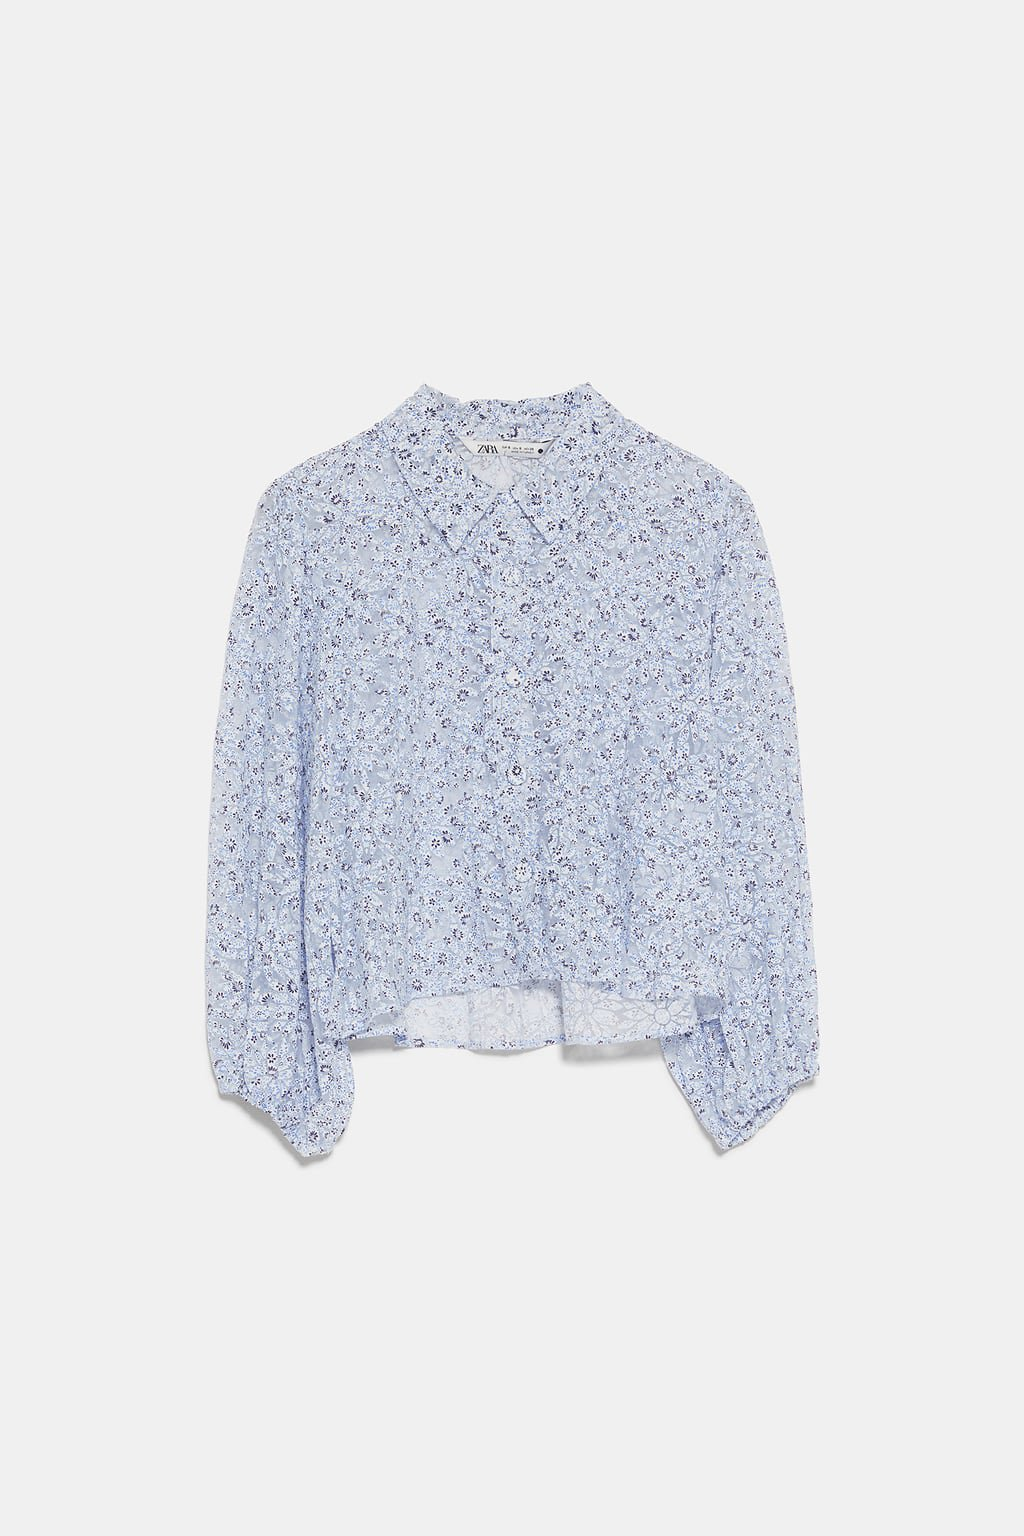 FLORAL ORGANZA BLOUSE - NEW IN-WOMAN | ZARA United States blue